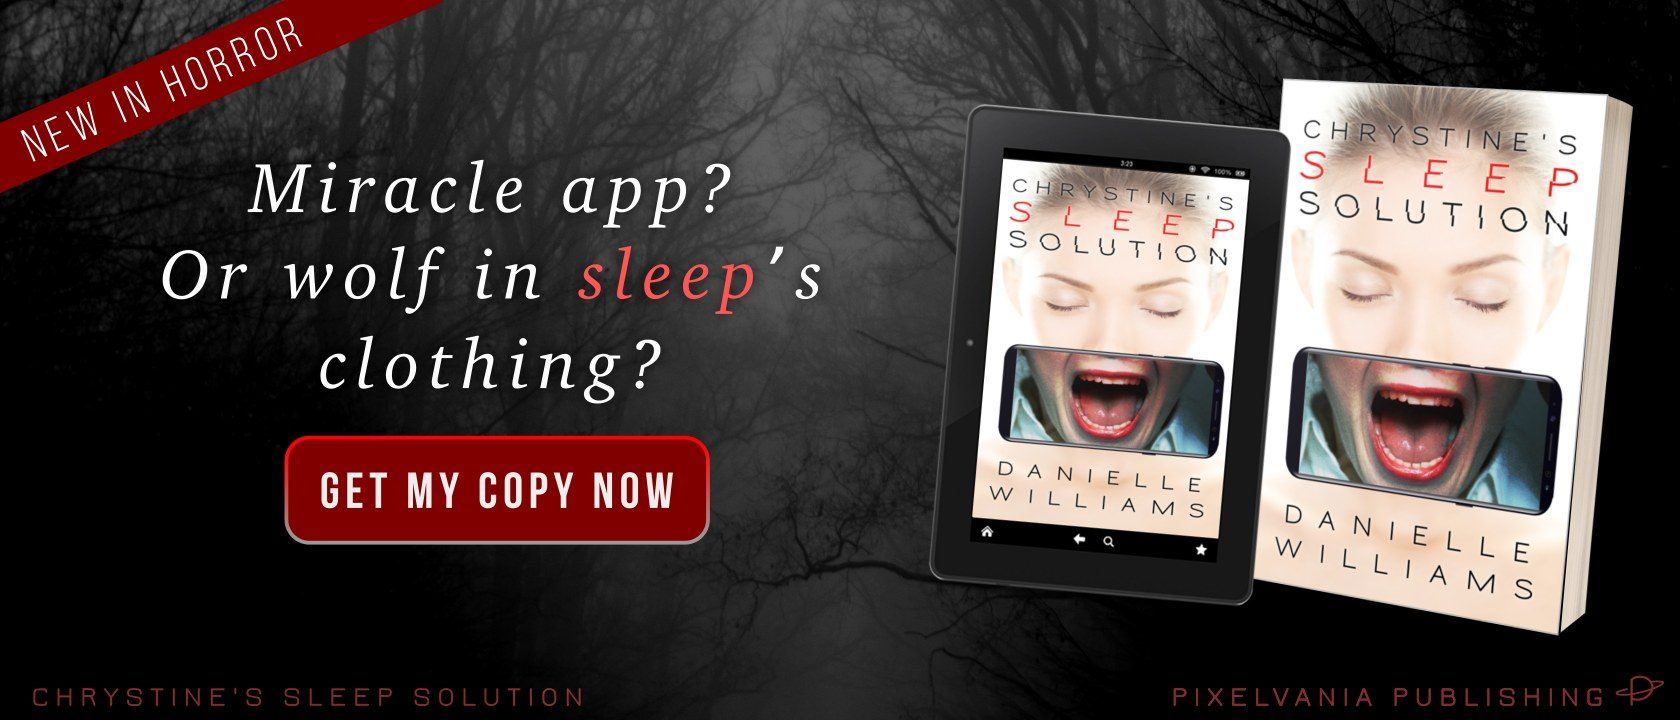 Click here buy CHRYSTINE'S SLEEP SOLUTION, my latest horror story, from your favorite retailer